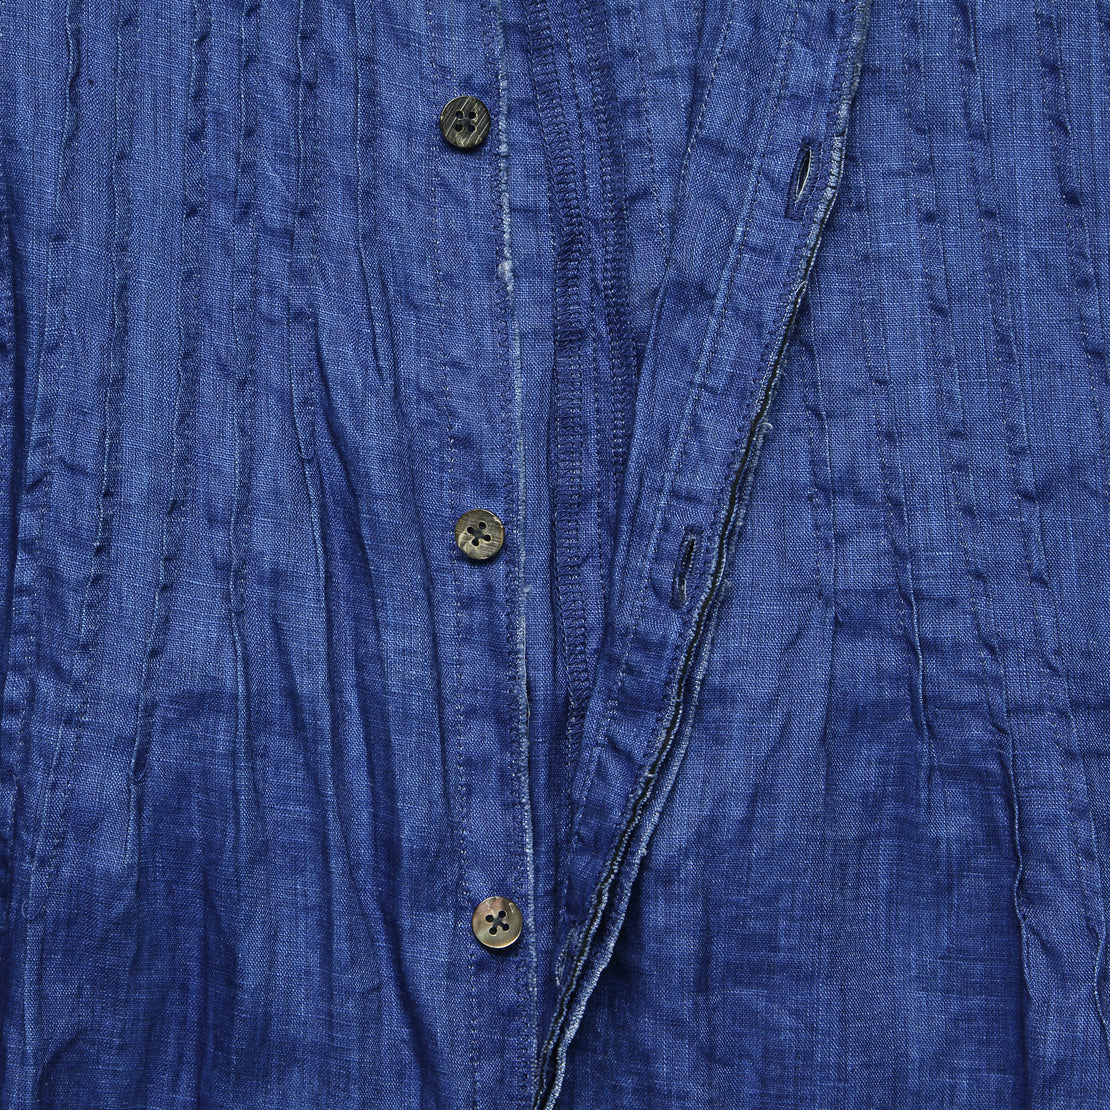 French Cloth Linen Pintuck O'Keefe Dress - Indigo